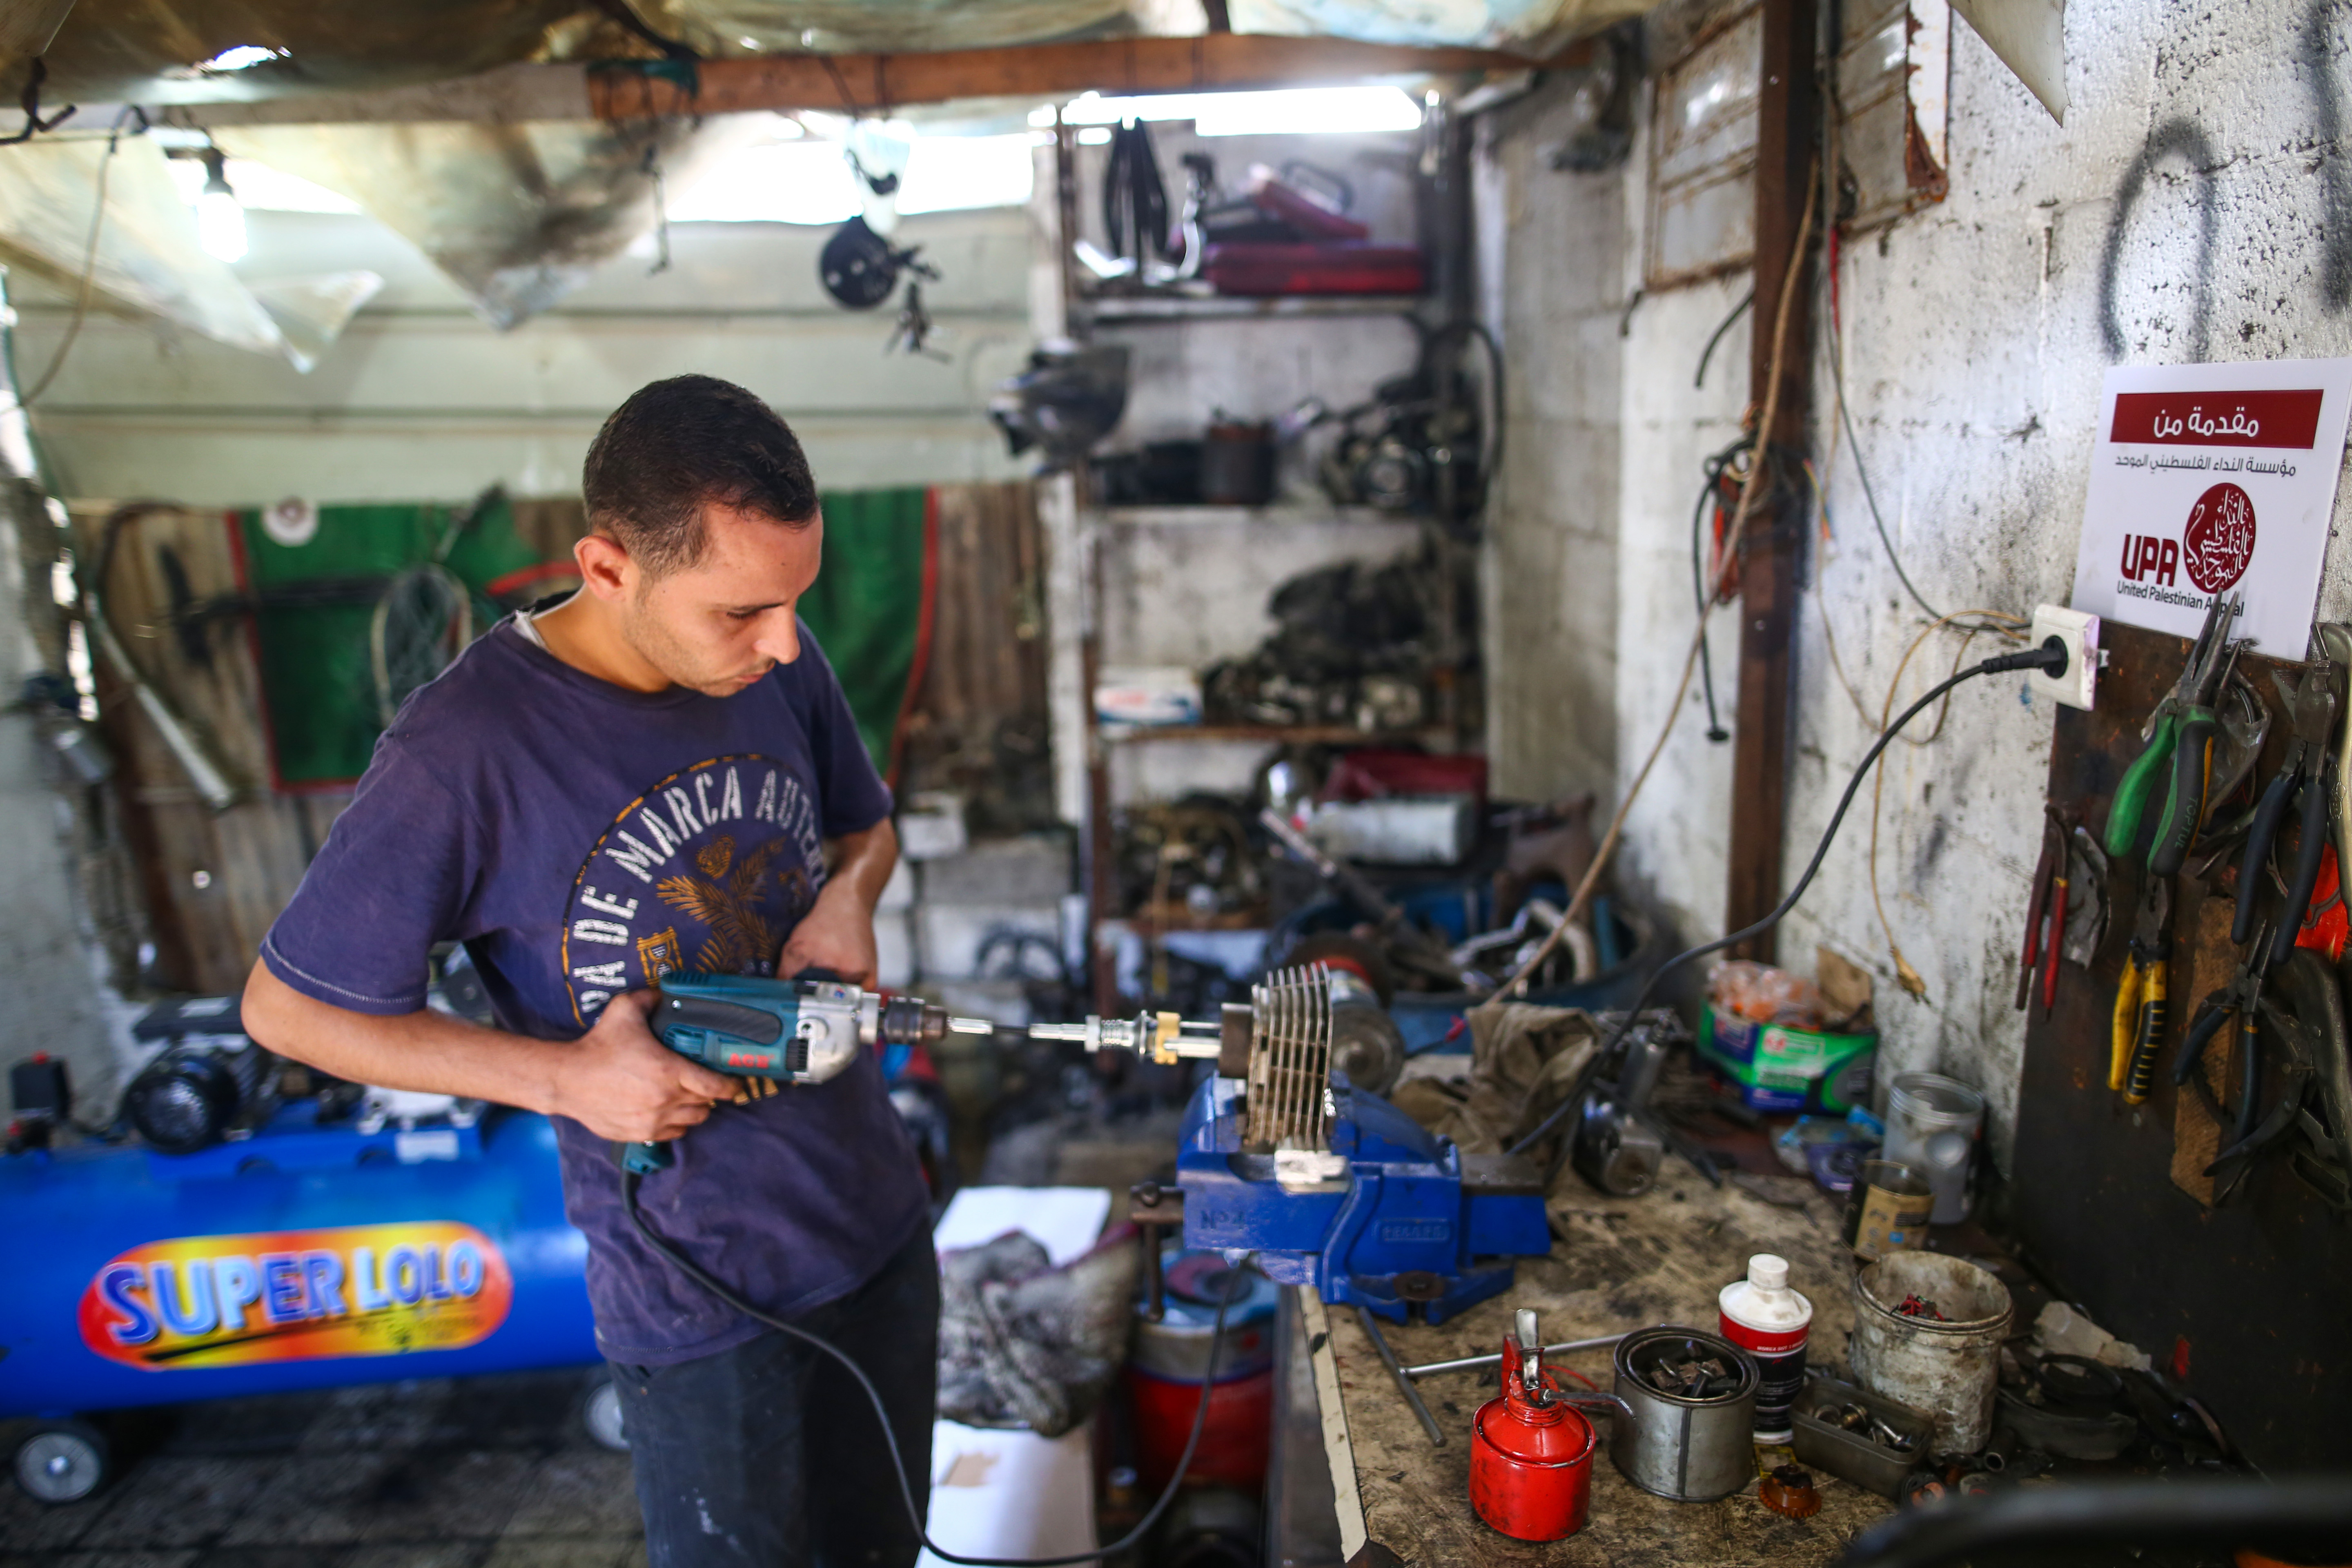 Mohammed works in his mechanic shop.